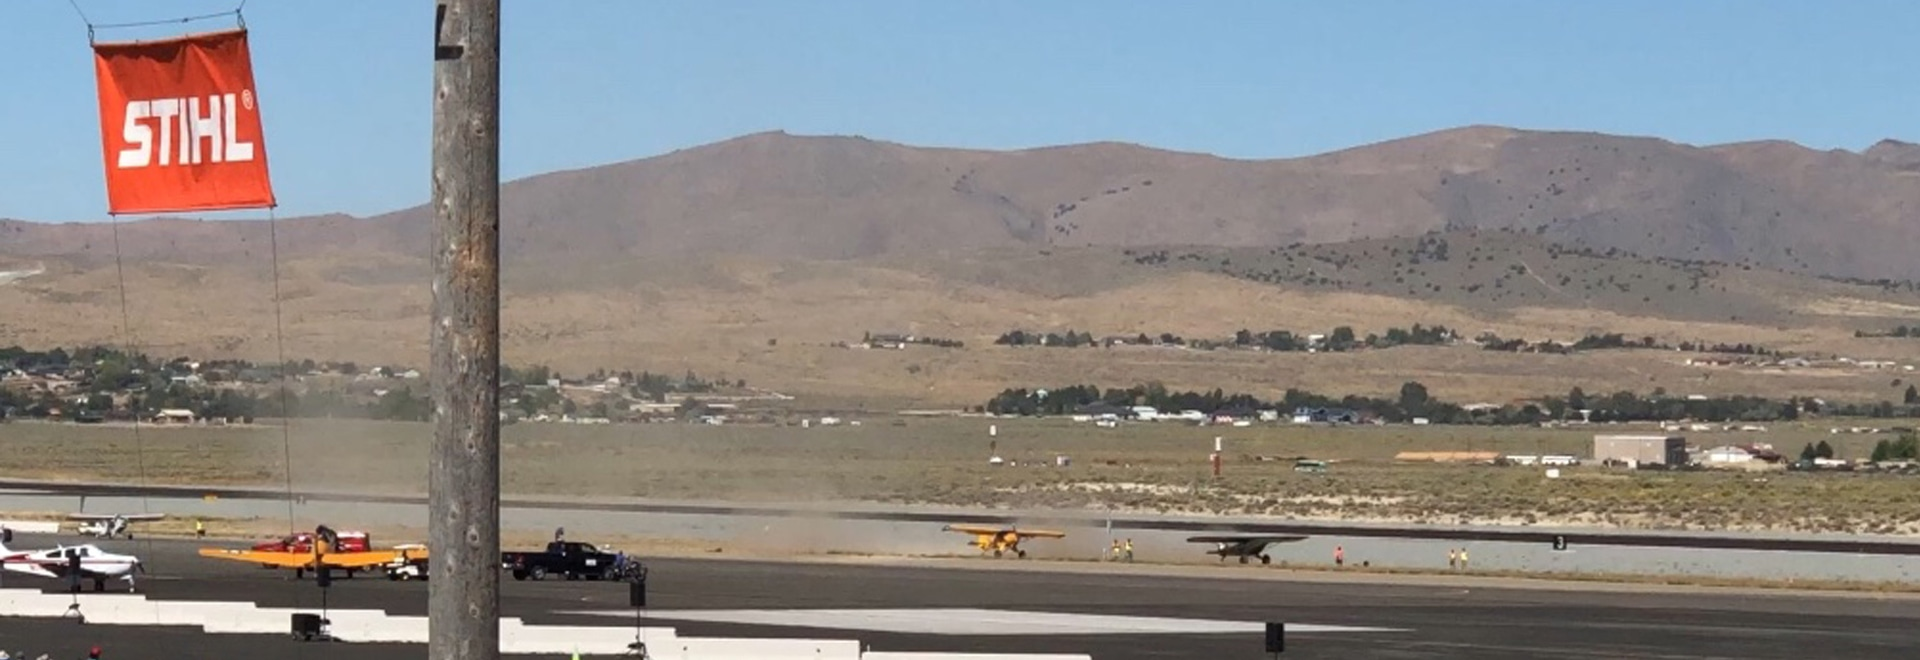 The 2019 Reno air races featured the first demonstration of the STOL Drag competition.